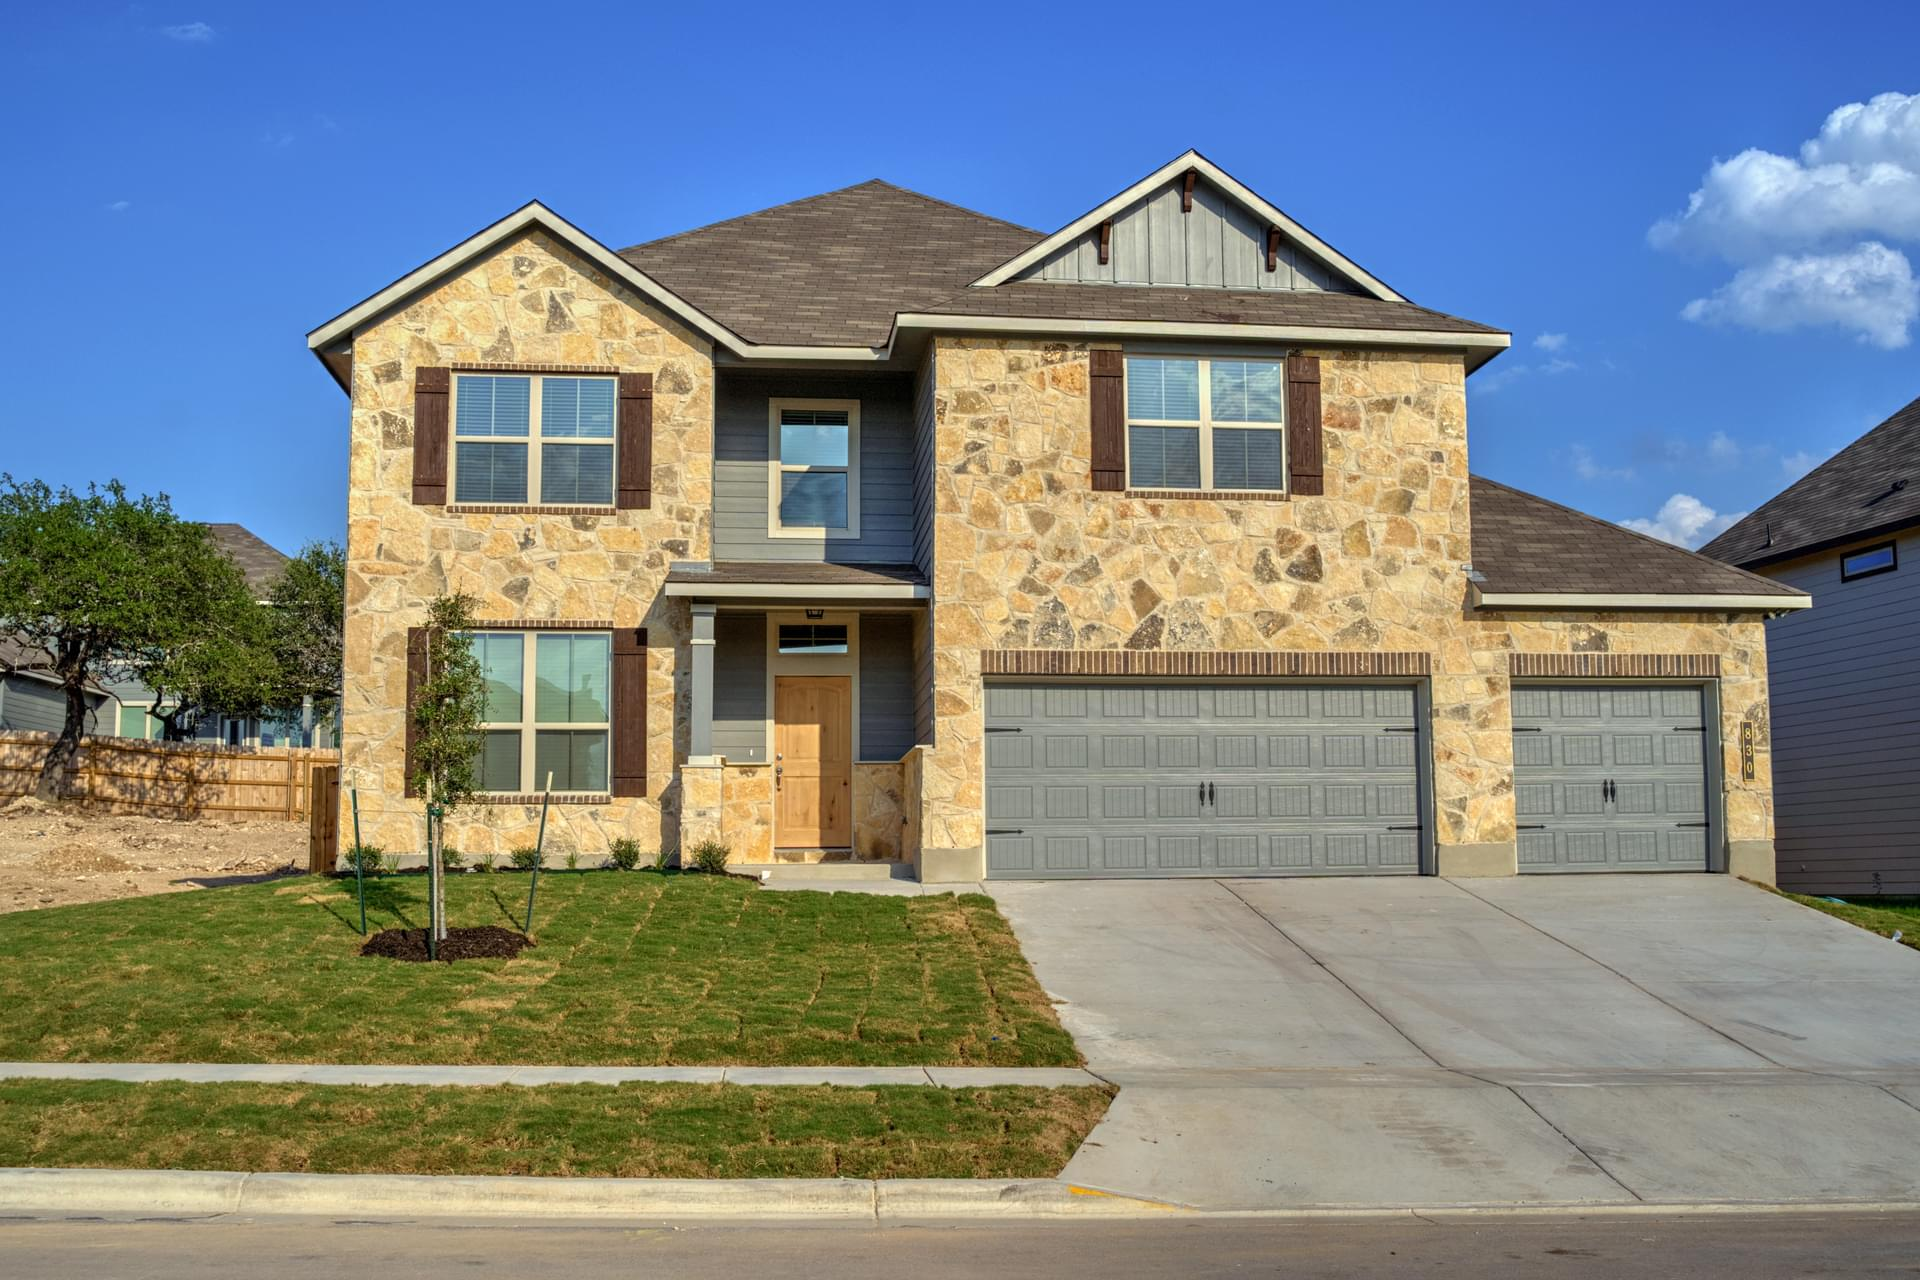 830 Ross Road  in Copperas Cove, TX